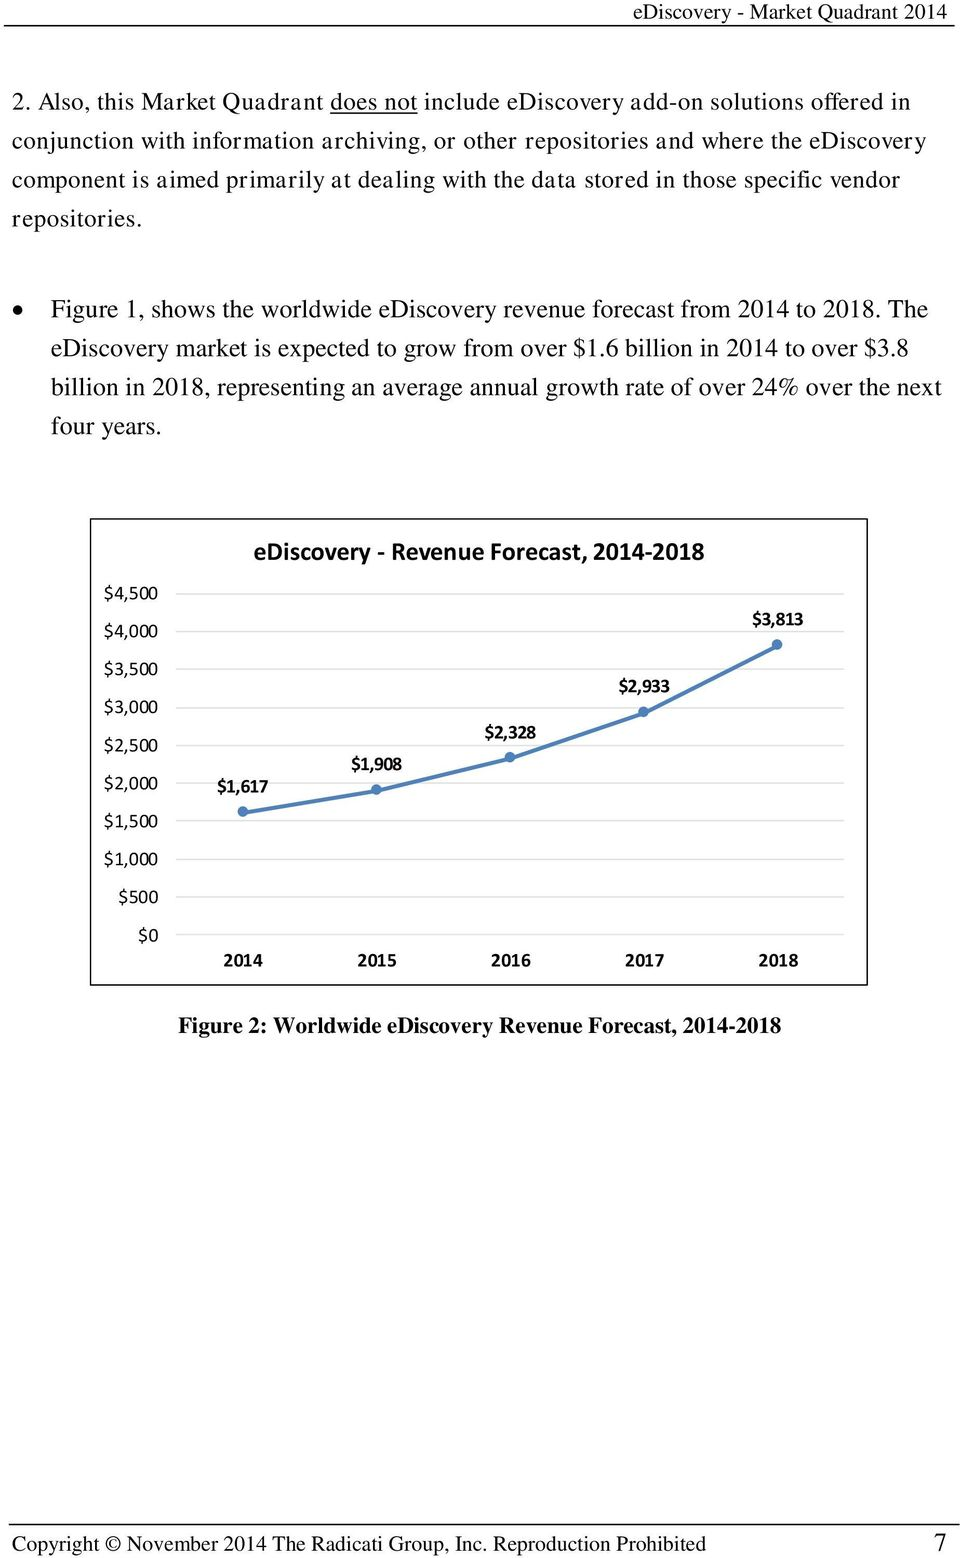 The ediscovery market is expected to grow from over $1.6 billion in 2014 to over $3.8 billion in 2018, representing an average annual growth rate of over 24% over the next four years.